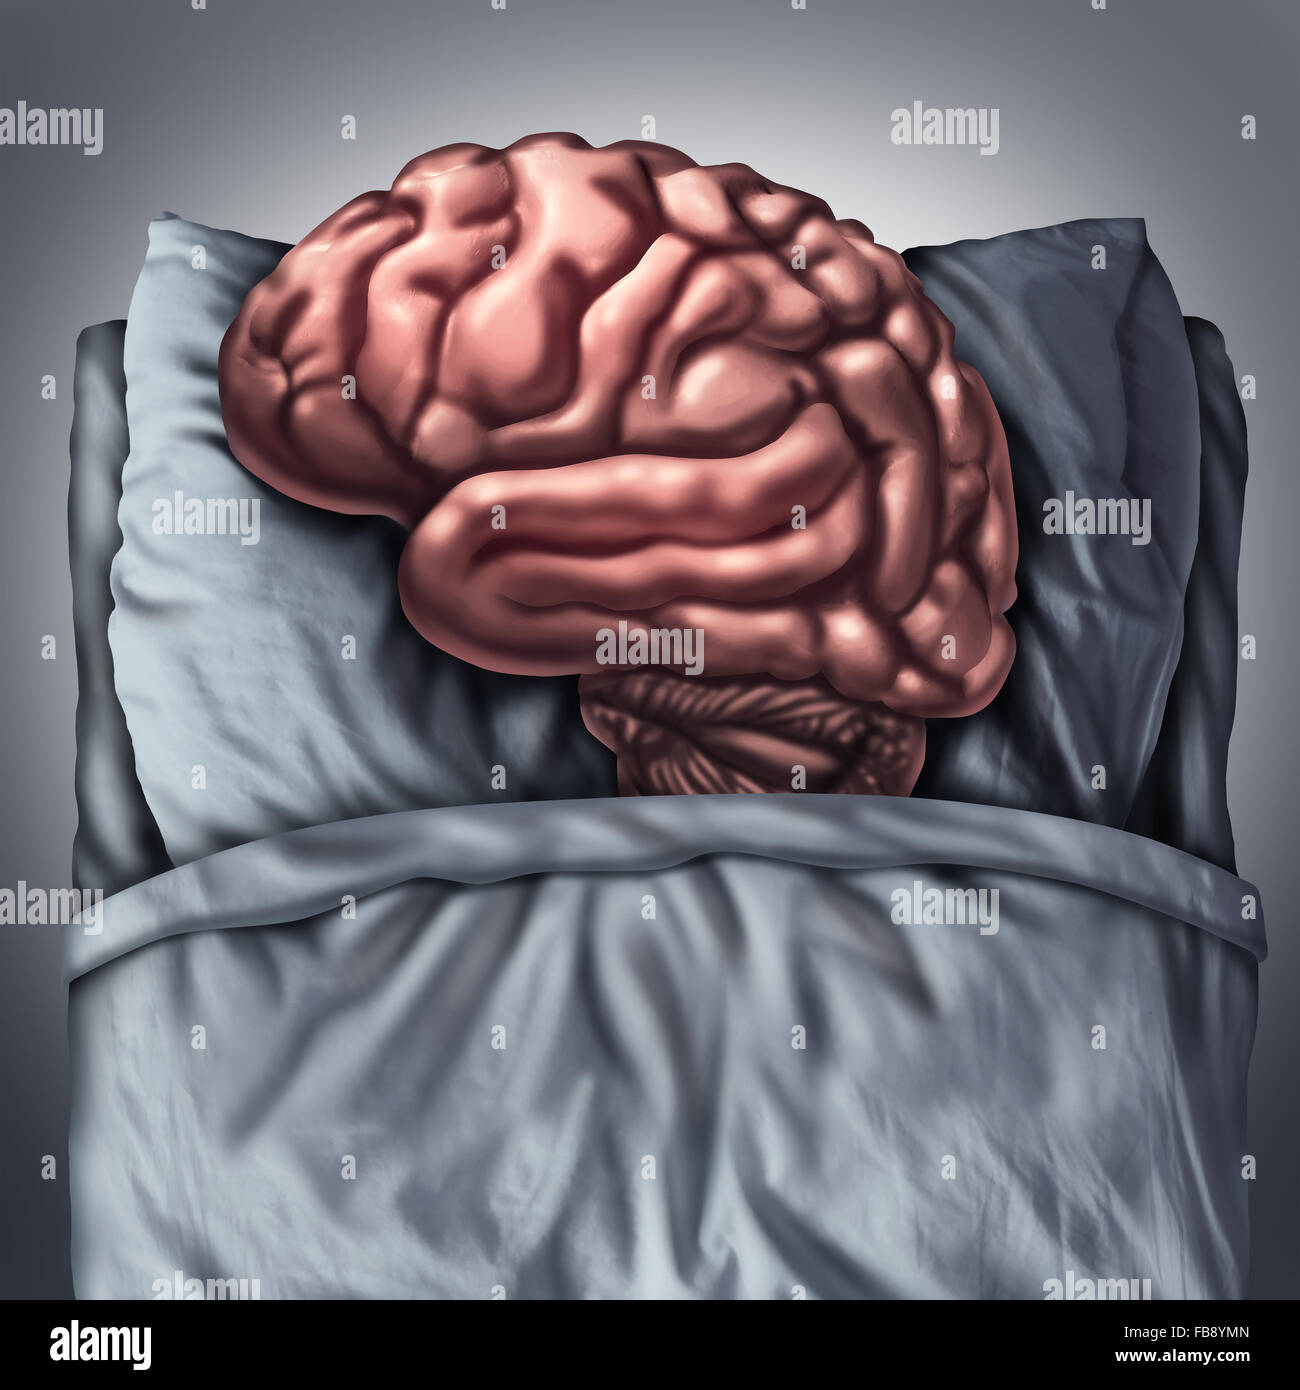 Brain sleep health care and medical concept for benefits of resting the thinking organ by sleeping on a pillow in - Stock Image